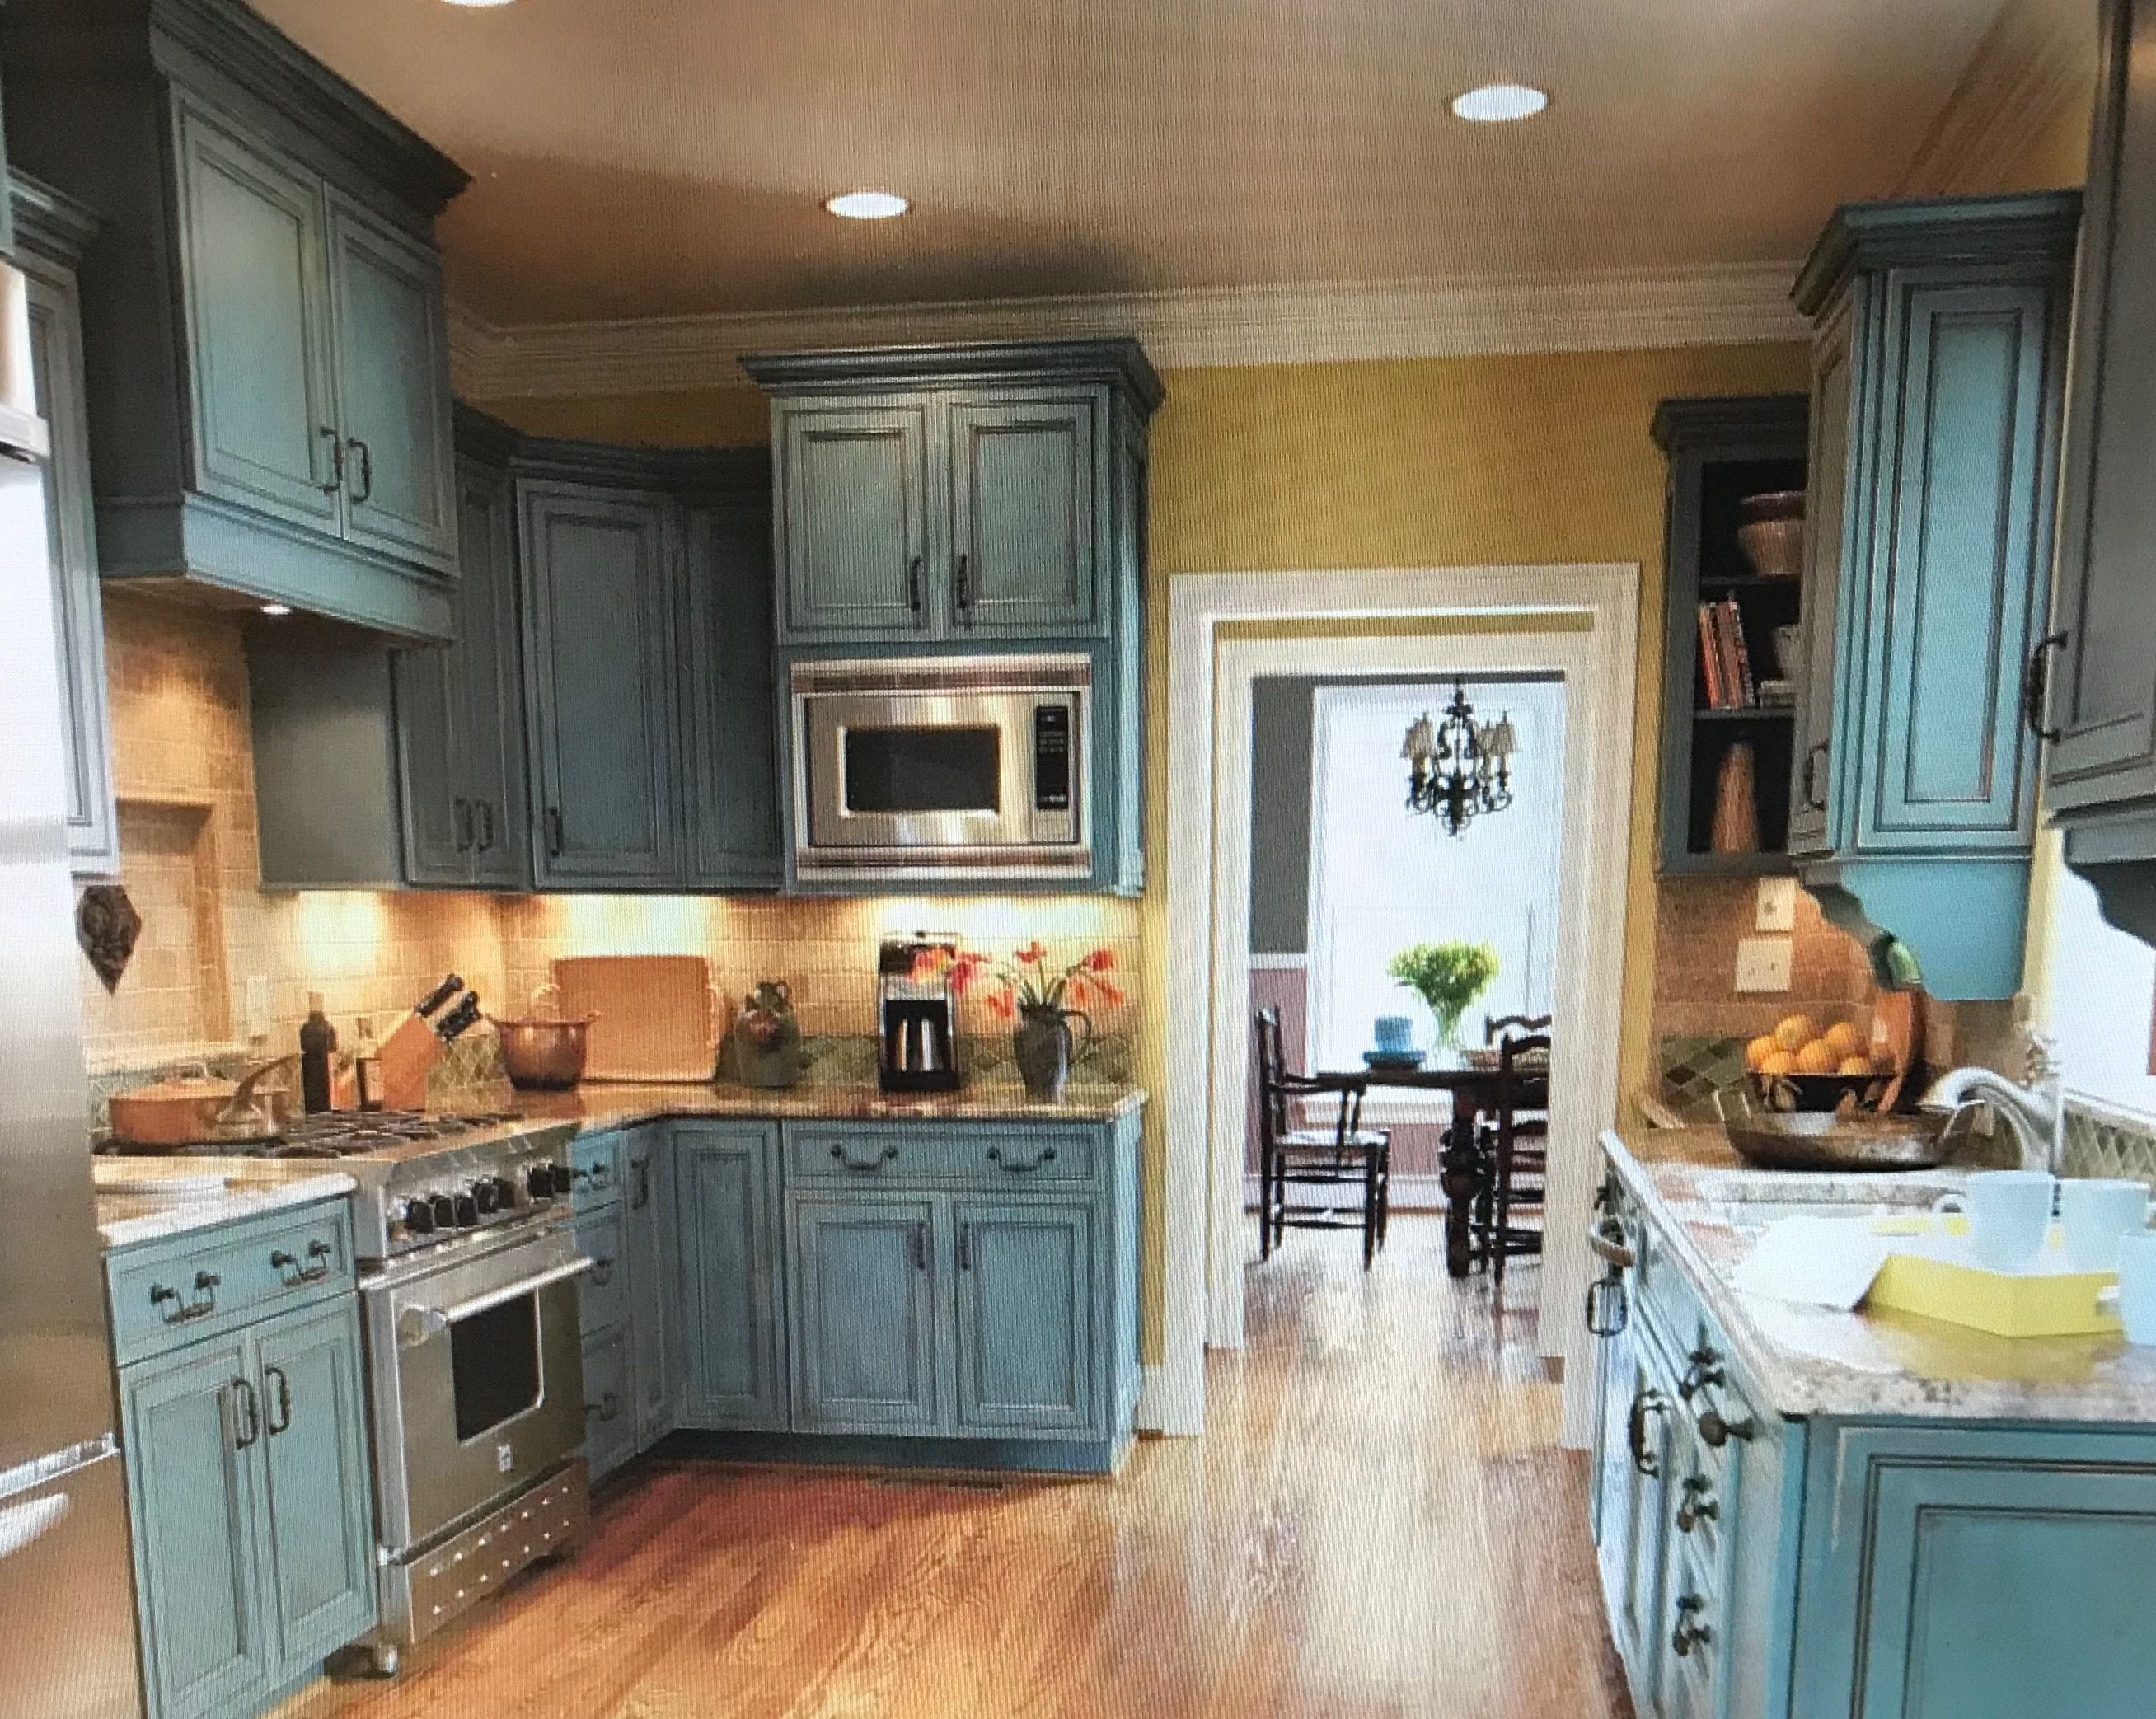 Pin By M Downing On In The Kitchen Distressed Kitchen Distressed Kitchen Cabinets Kitchen Cabinets For Sale